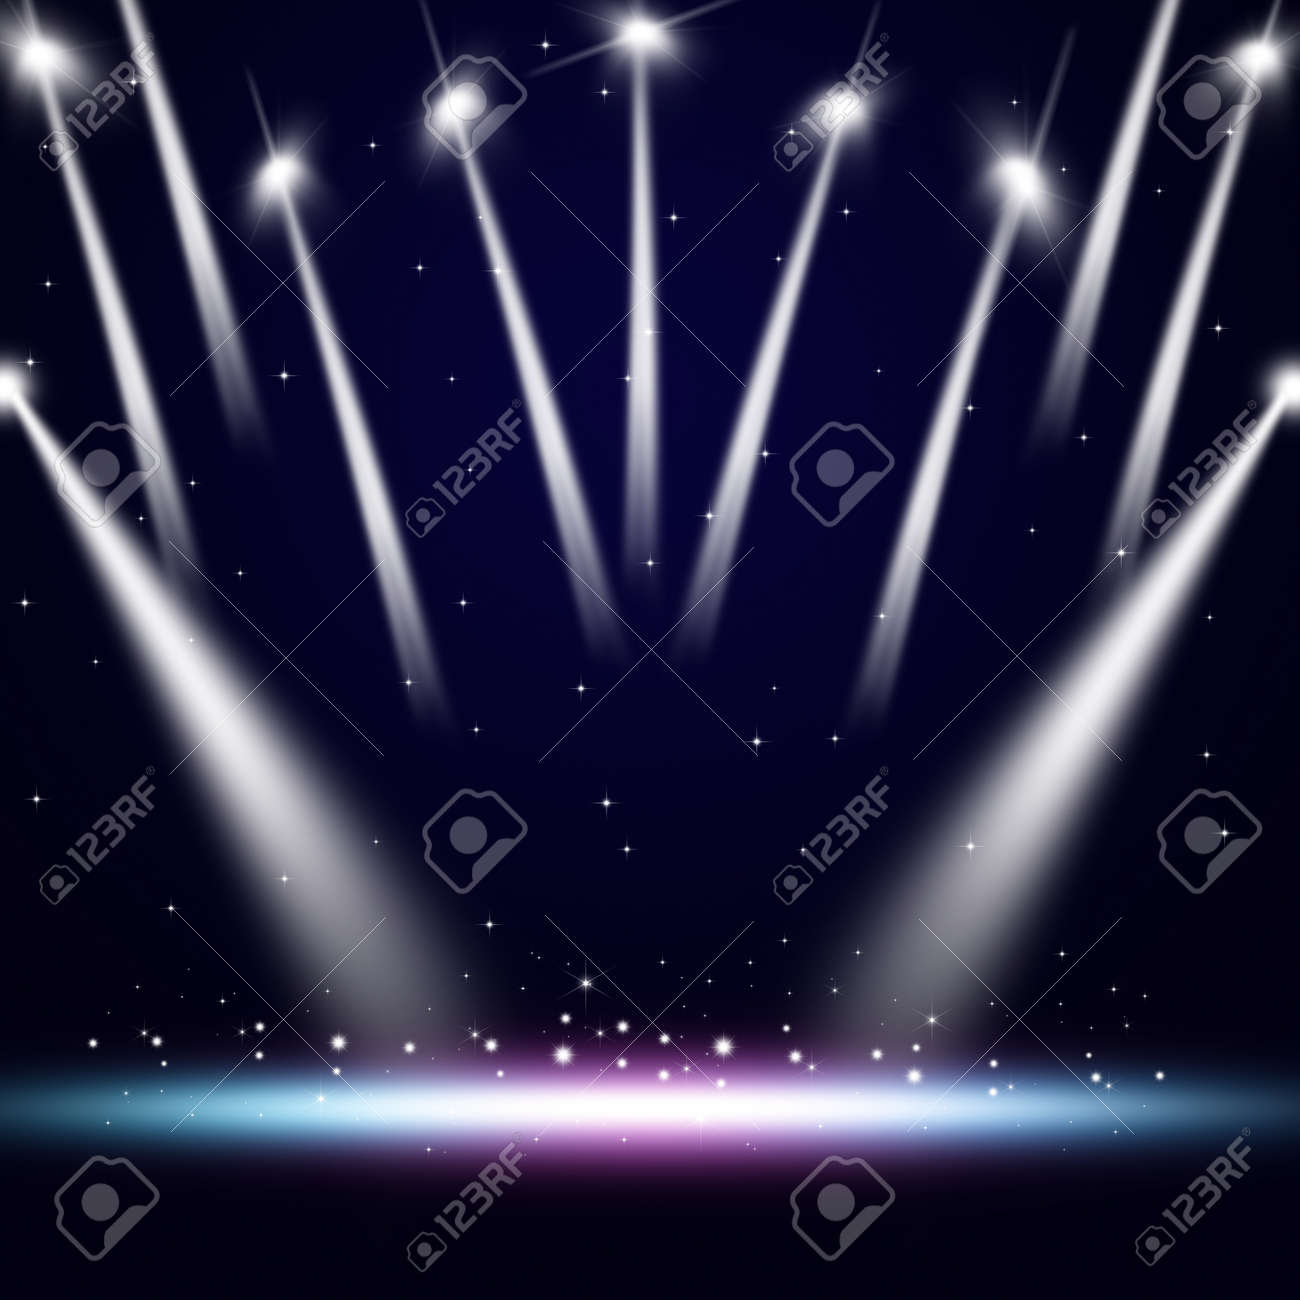 Music Event Background With Spotlights On The Stage Stock Photo, Picture  And Royalty Free Image. Image 61526272.